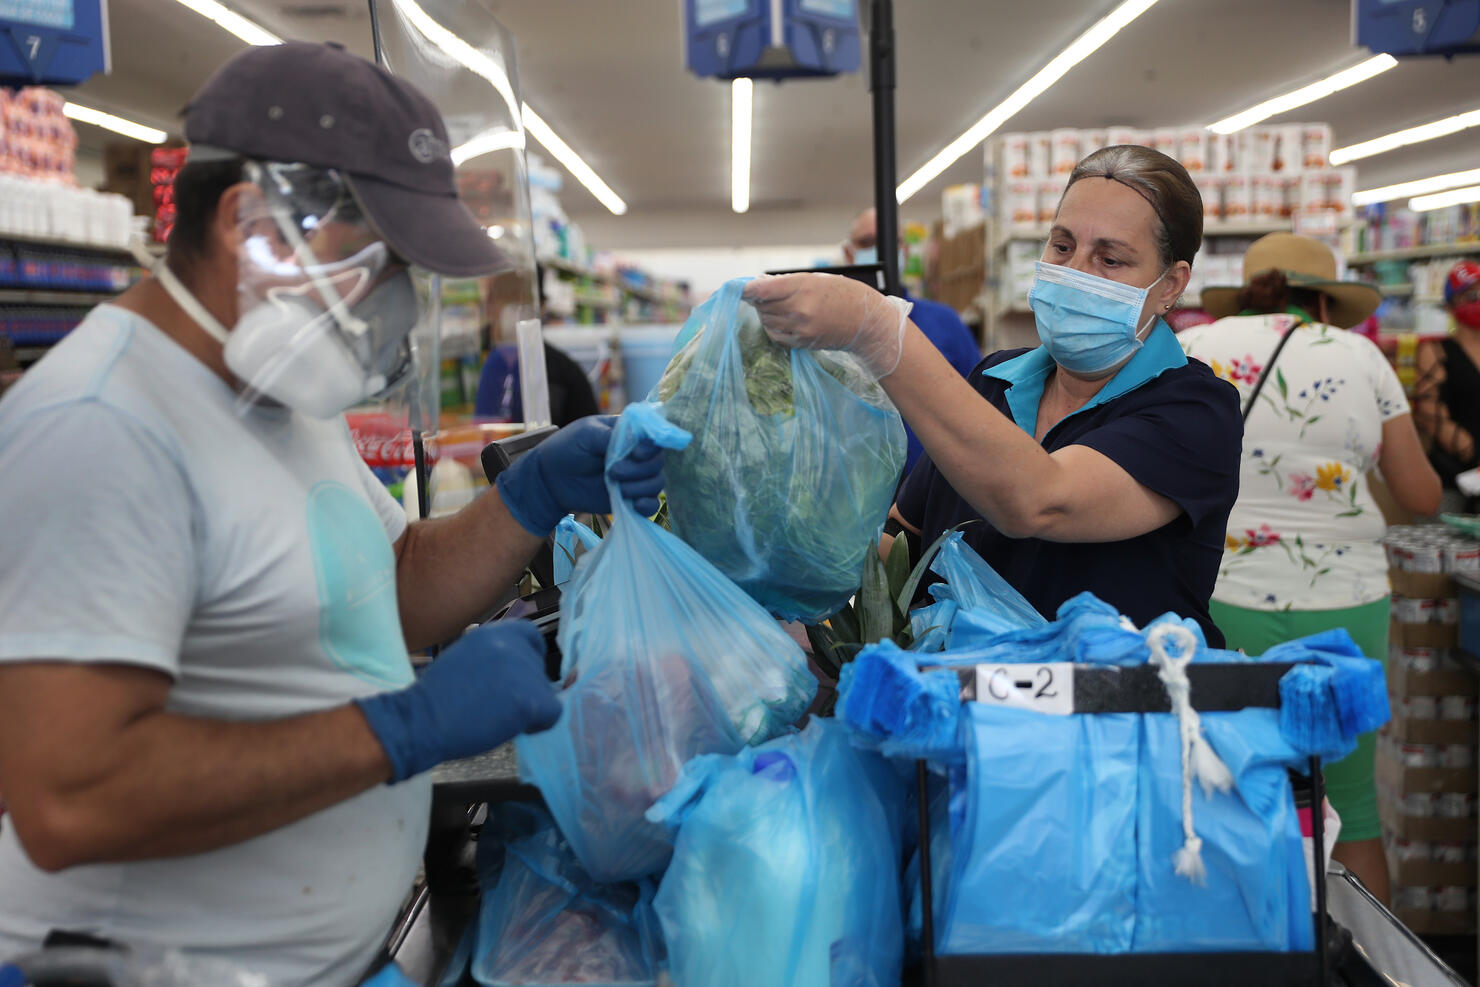 Essential Workers Keep Businesses Open And Serve Customers During COVID-19 Pandemic